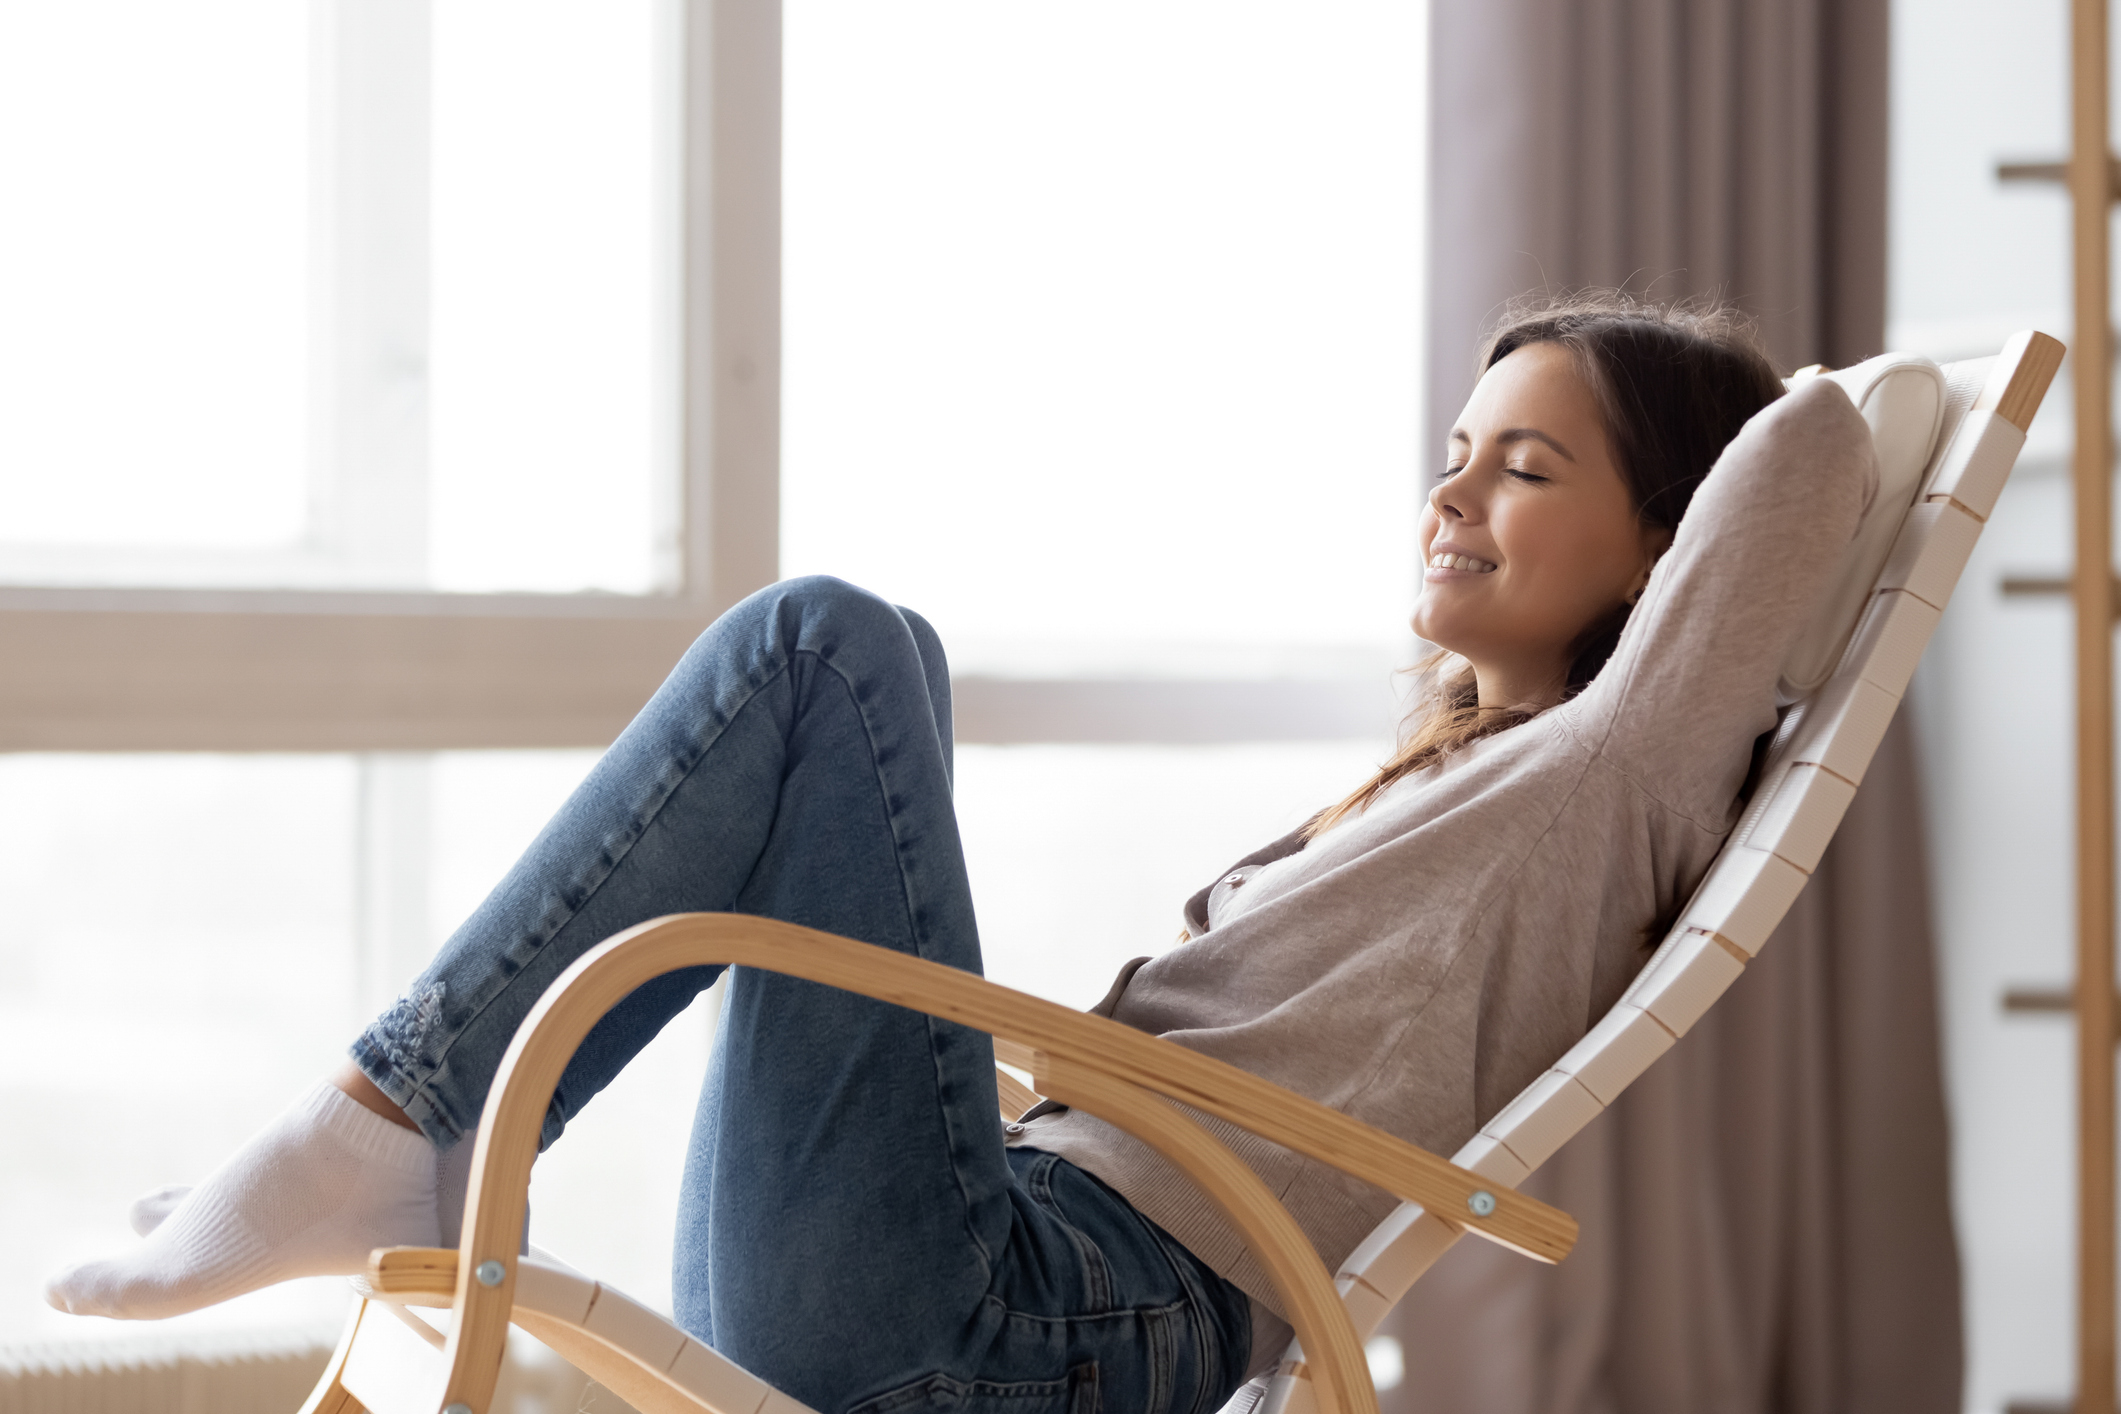 Relaxed calm young woman lounging sitting in comfortable rocking chair